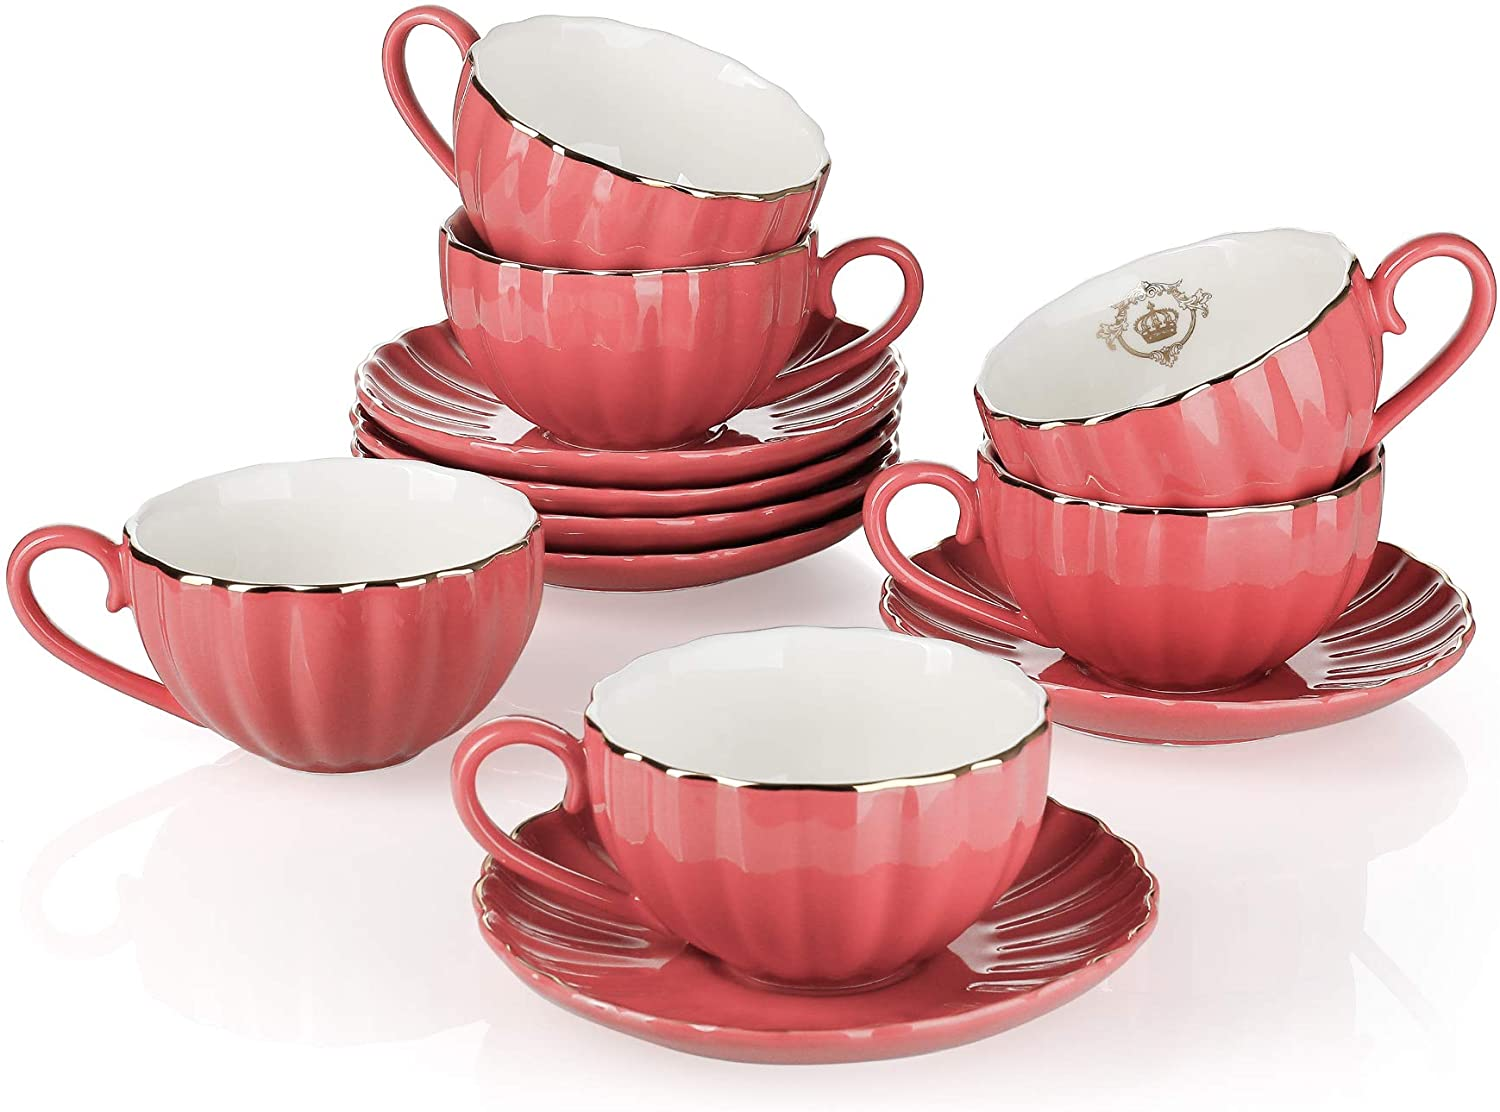 Amazingware Royal Tea Cups and Saucers, with Gold Trim and Gift Box, British Coffee Cups, Porcelain Tea Set, Set of 6 (8 oz)- Red